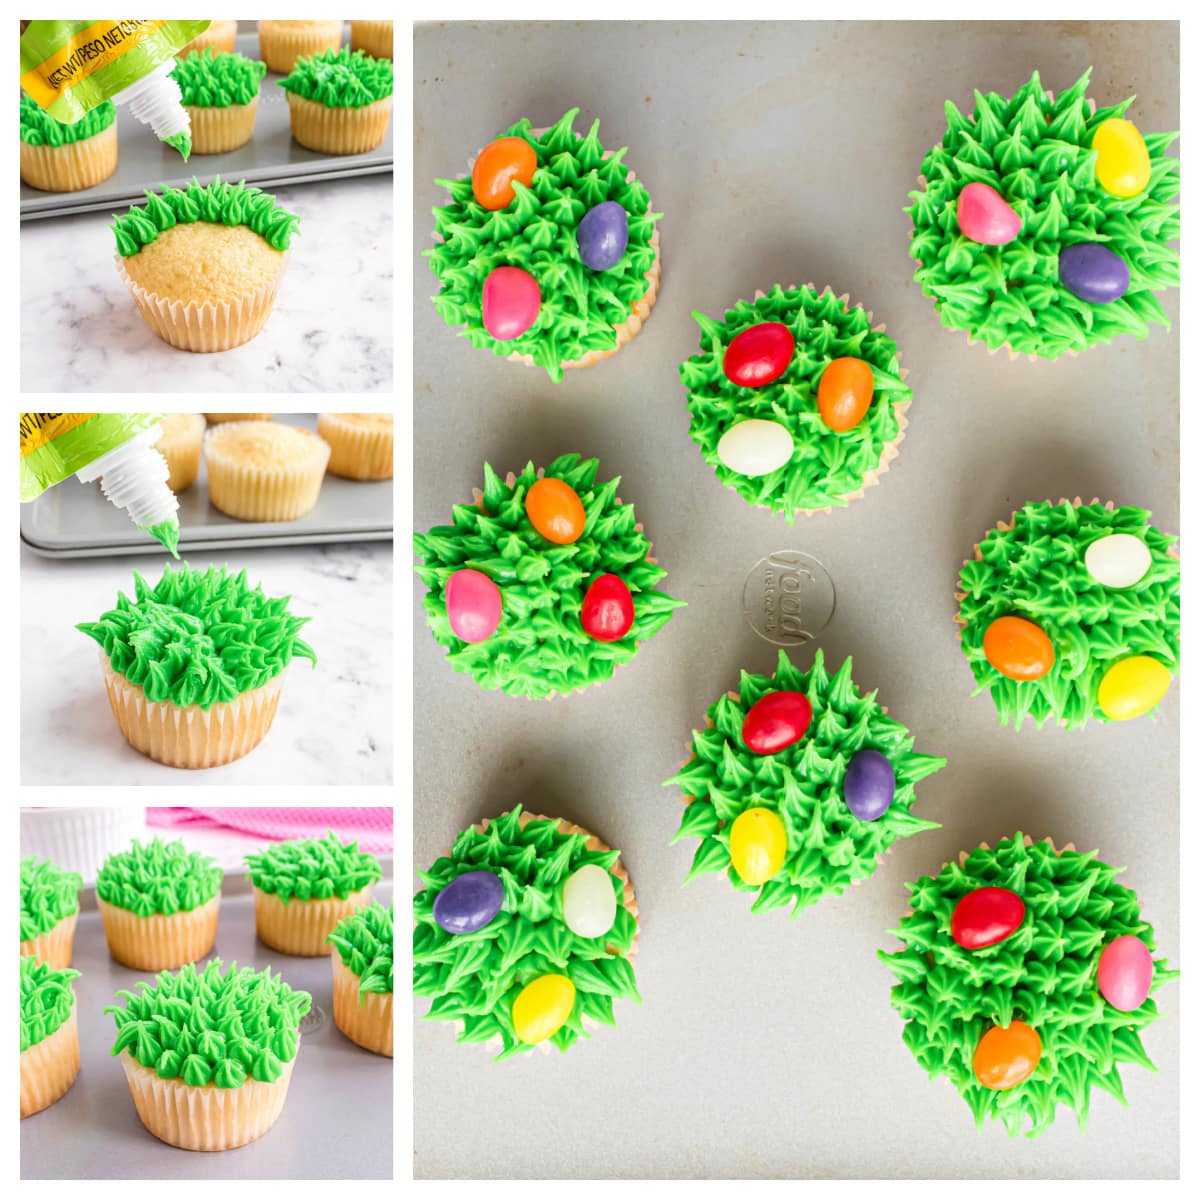 how to make grass and easter eggs on cupcakes